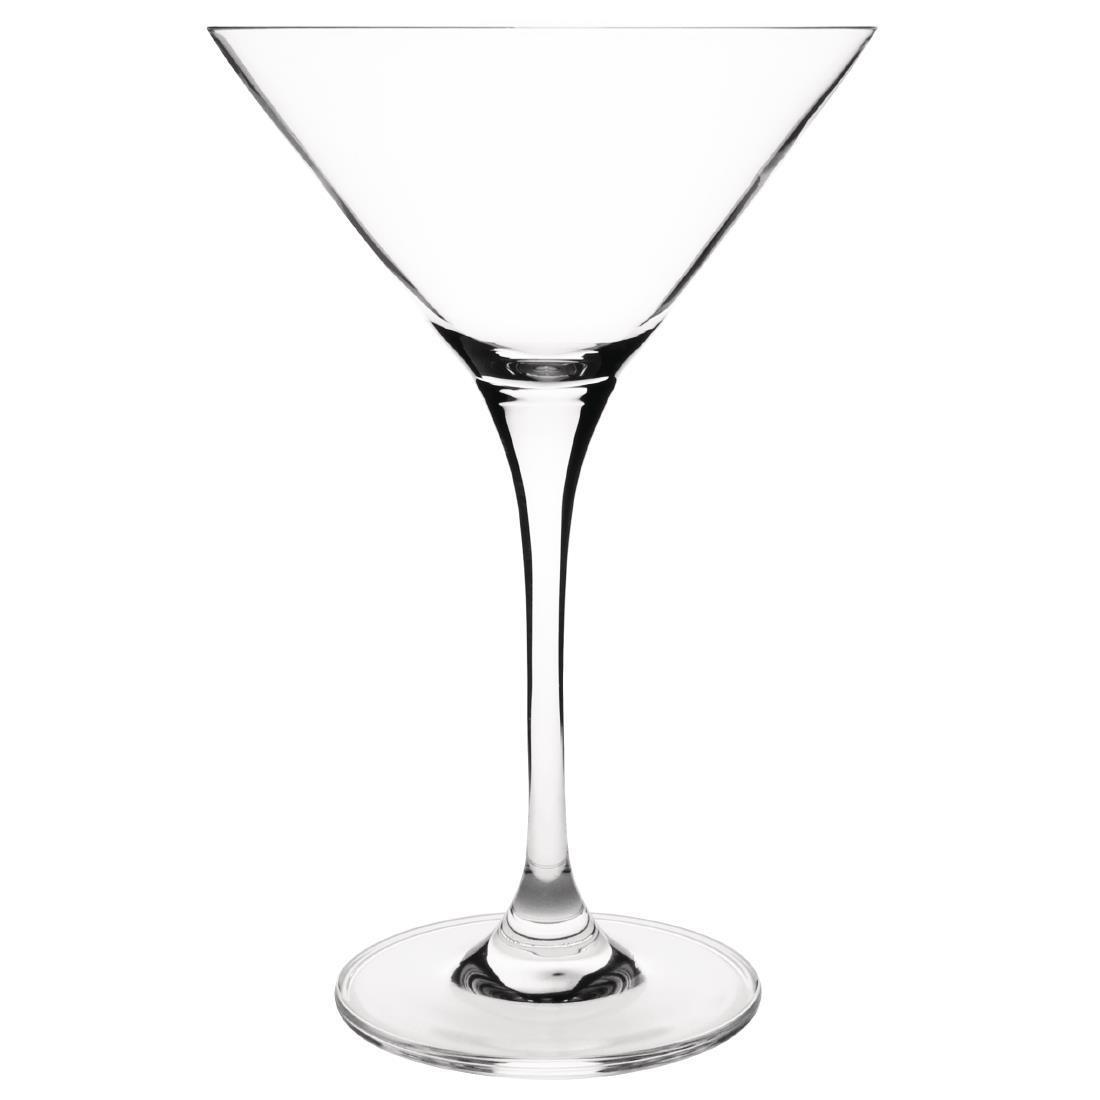 Olympia Campana One Piece Crystal Martini Glass 260ml